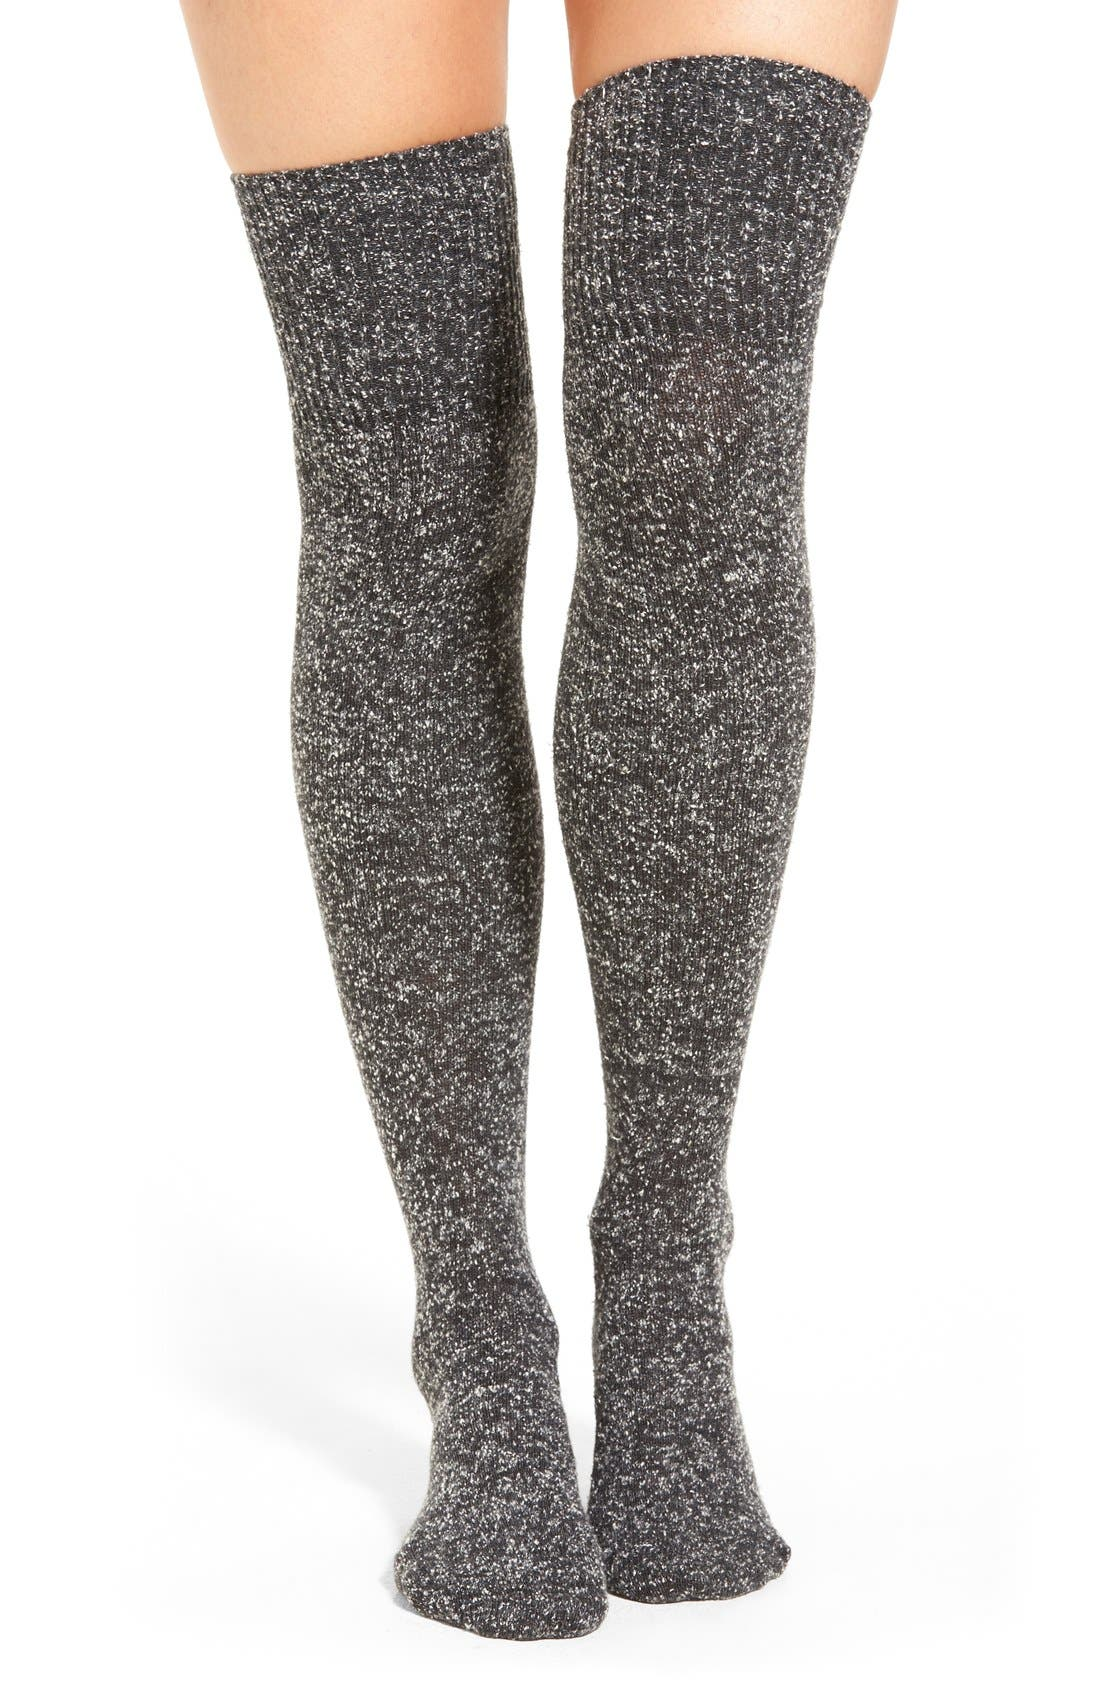 Alternate Image 1 Selected - Lemon 'Snowfall Tweed' Over the Knee Socks